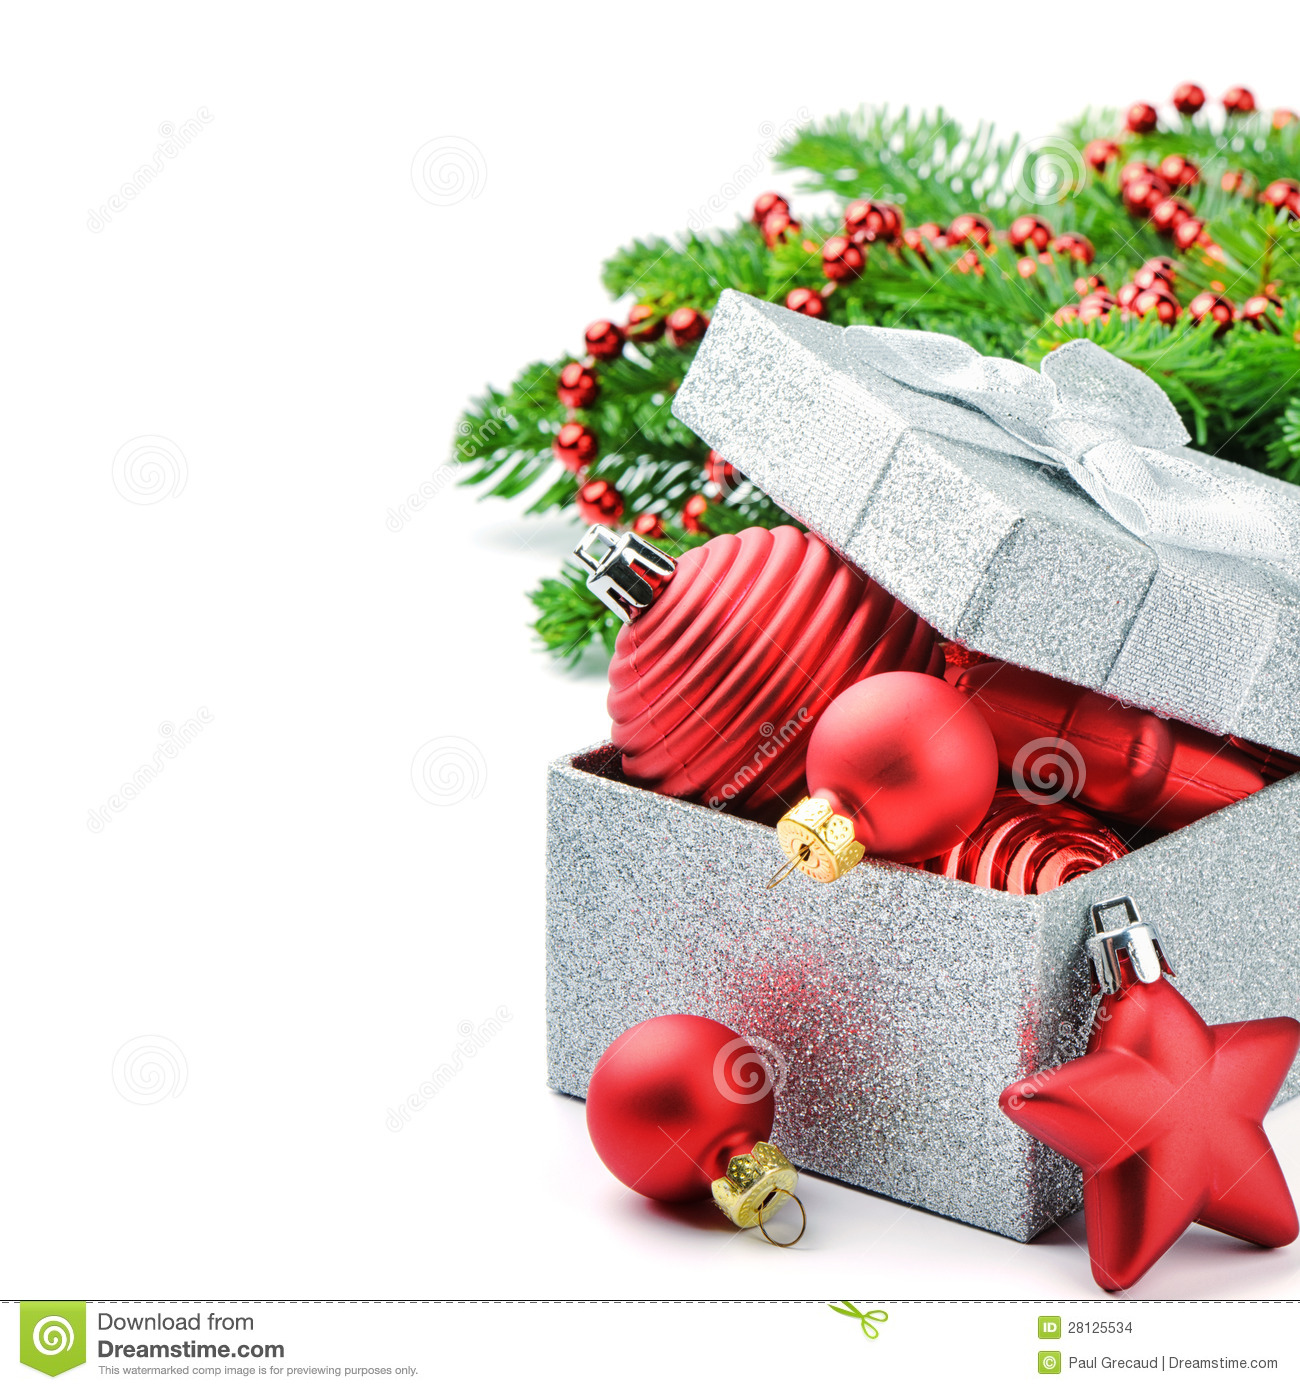 christmas gift box with festive decorations - Decorative Christmas Gift Boxes With Lids